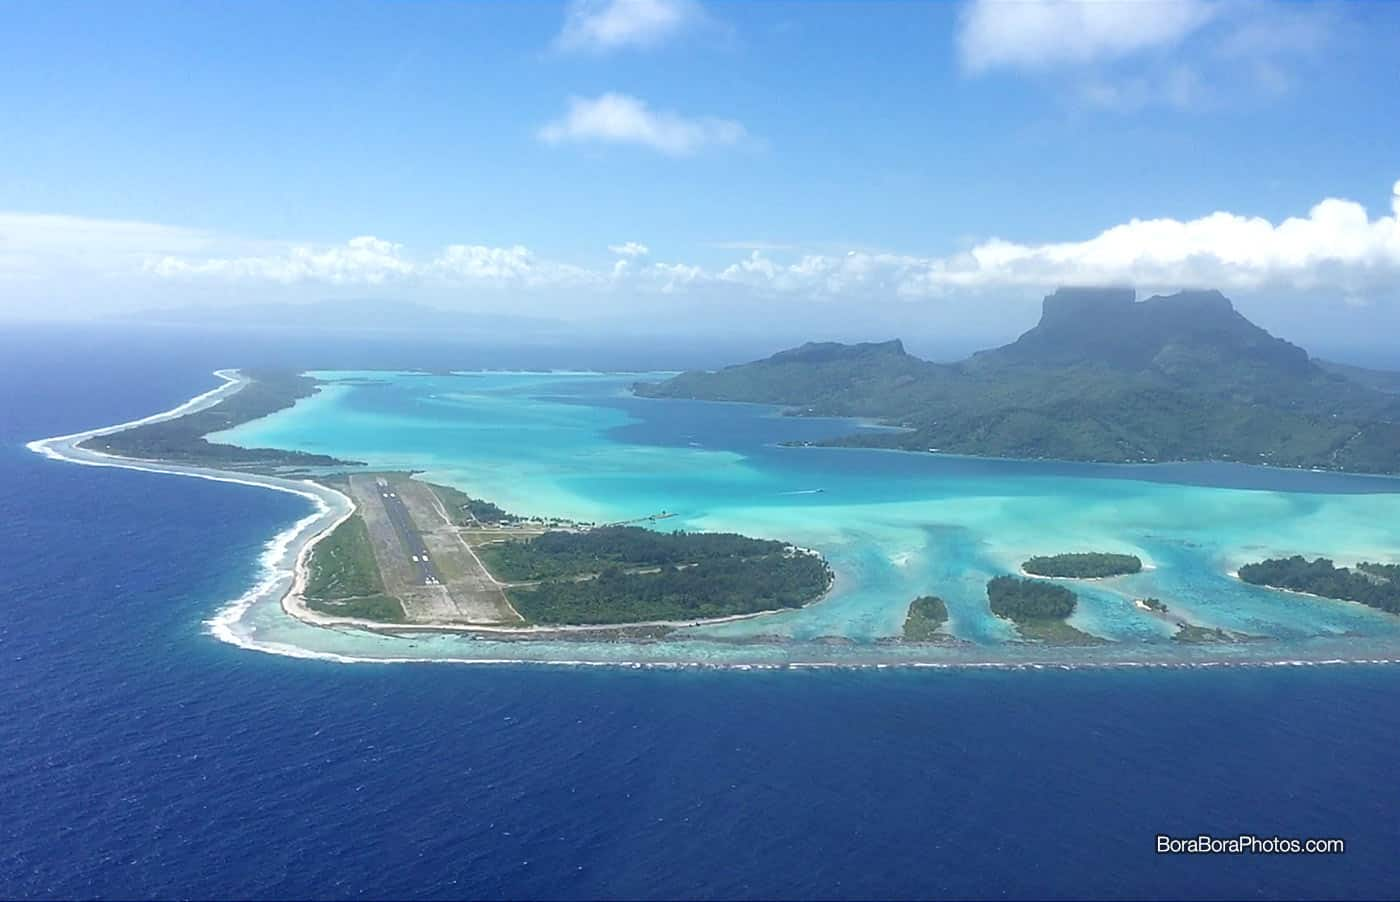 Bora Bora Airport (BOB) - One of French Polynesia first official airports which was constructed during World War II, and now serves as a gateway to tourists staying in overwater bungalows.